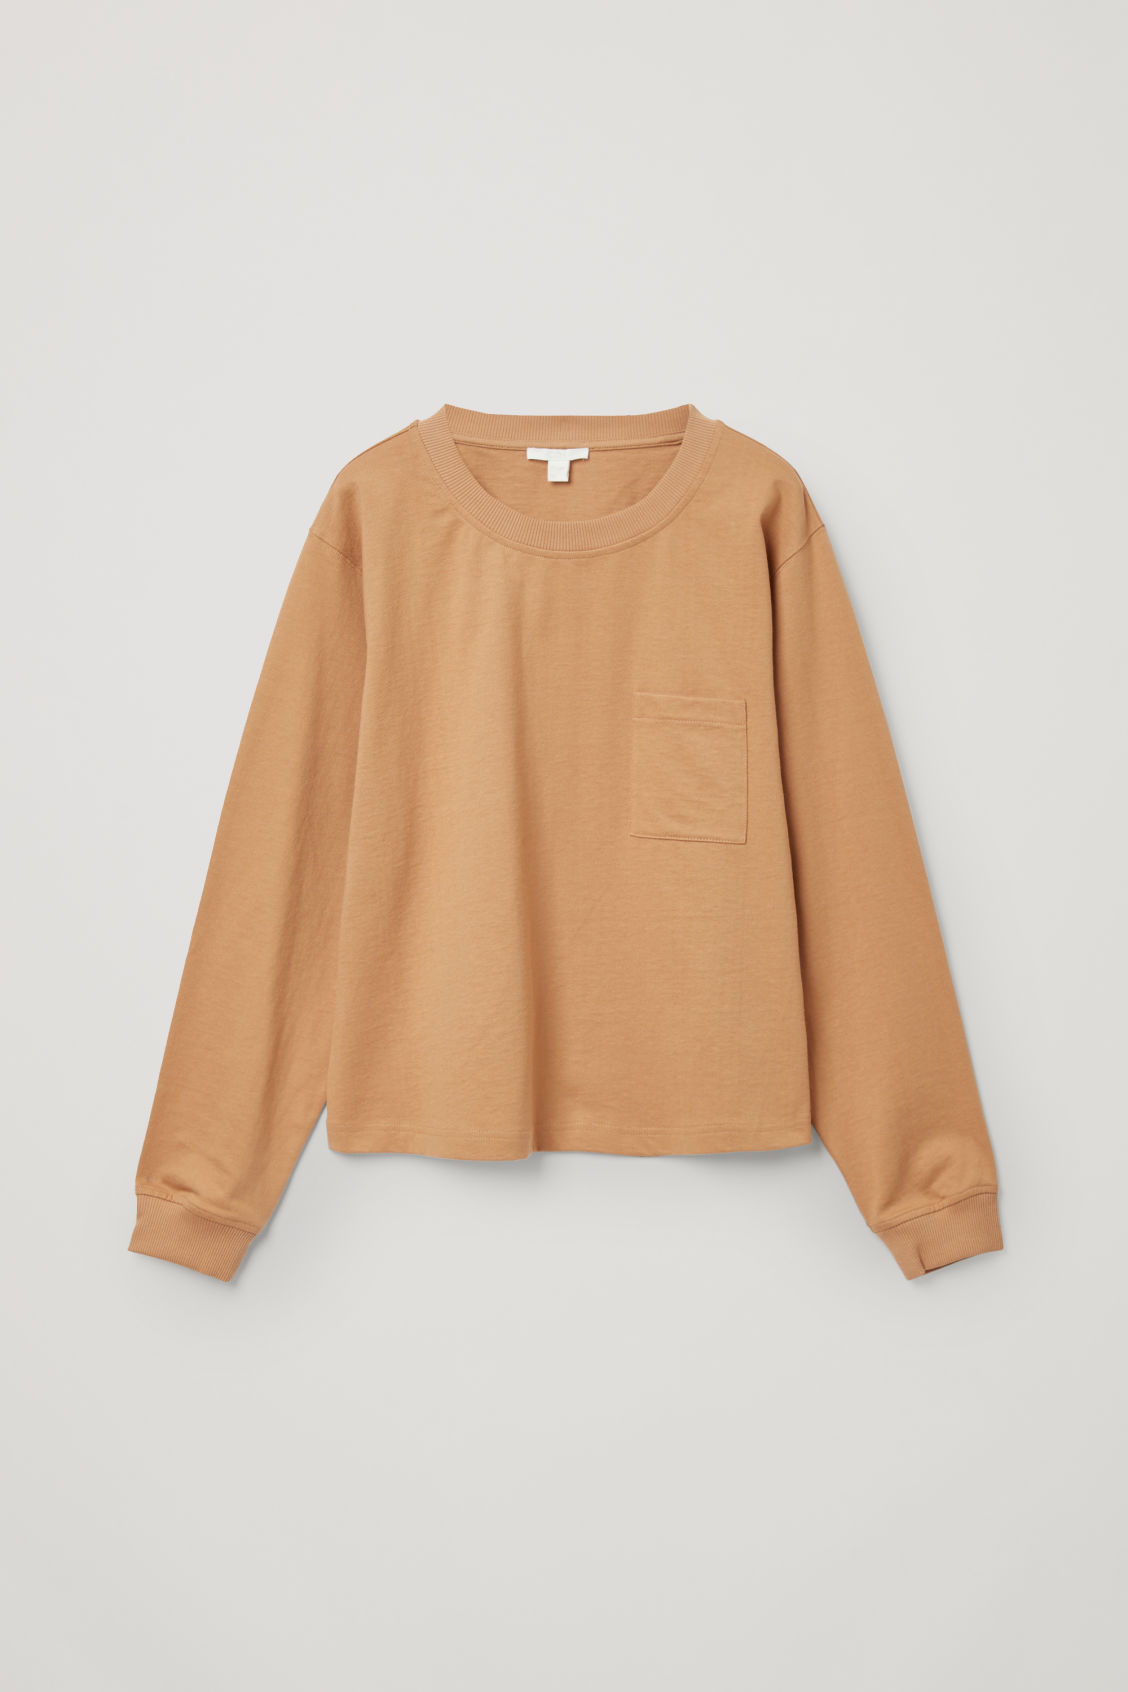 Cos Cotton Long-sleeve Patch Pocket T-shirt In Beige